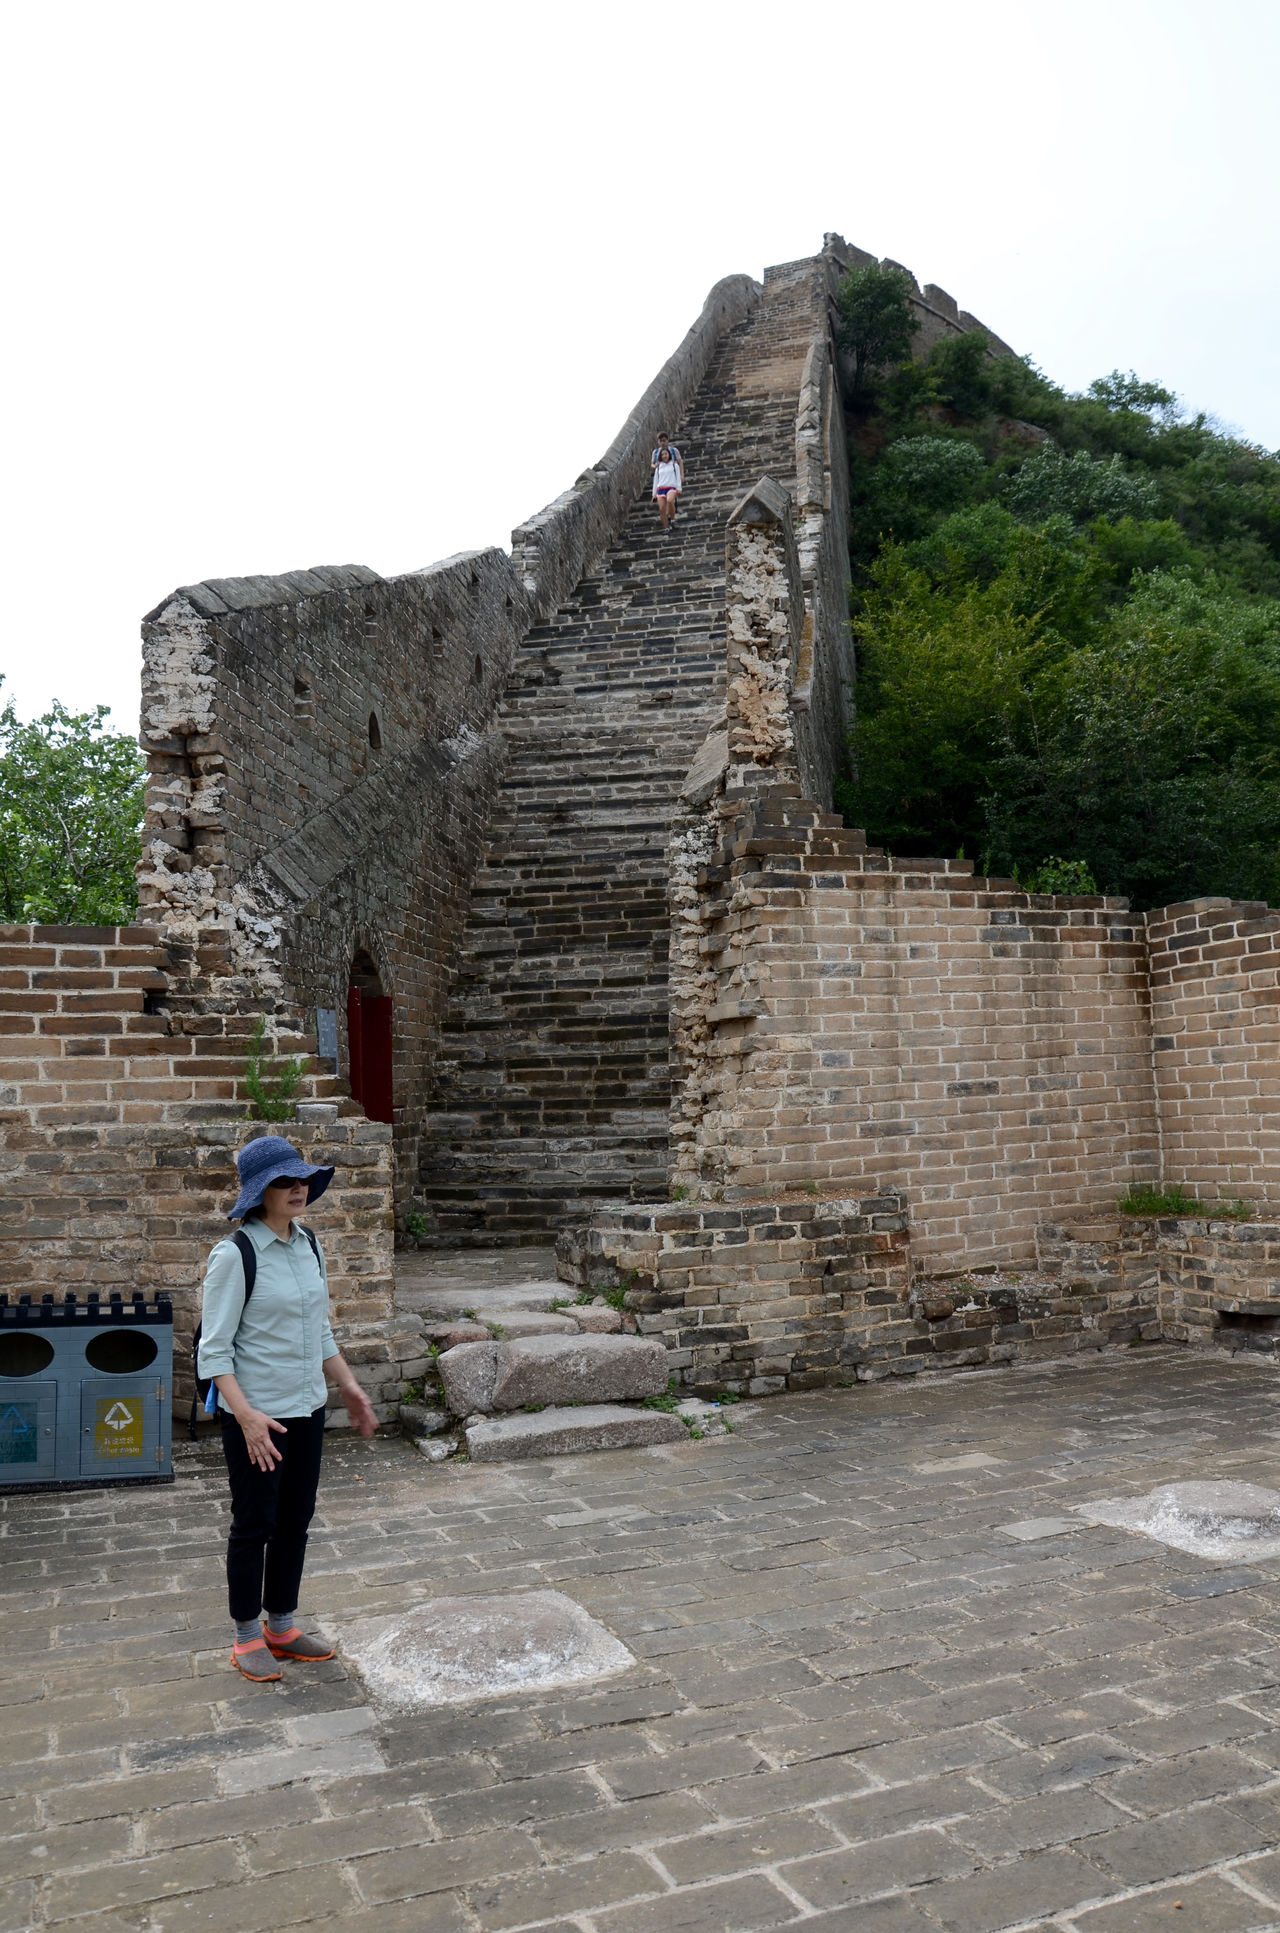 Artchetecture_collection Beijing, China Brick Wall Famous Place Gubeikou Jinshanling JInshanling Great Wall The Great Wall Of China Top Of The Mountain Finding New Frontiers